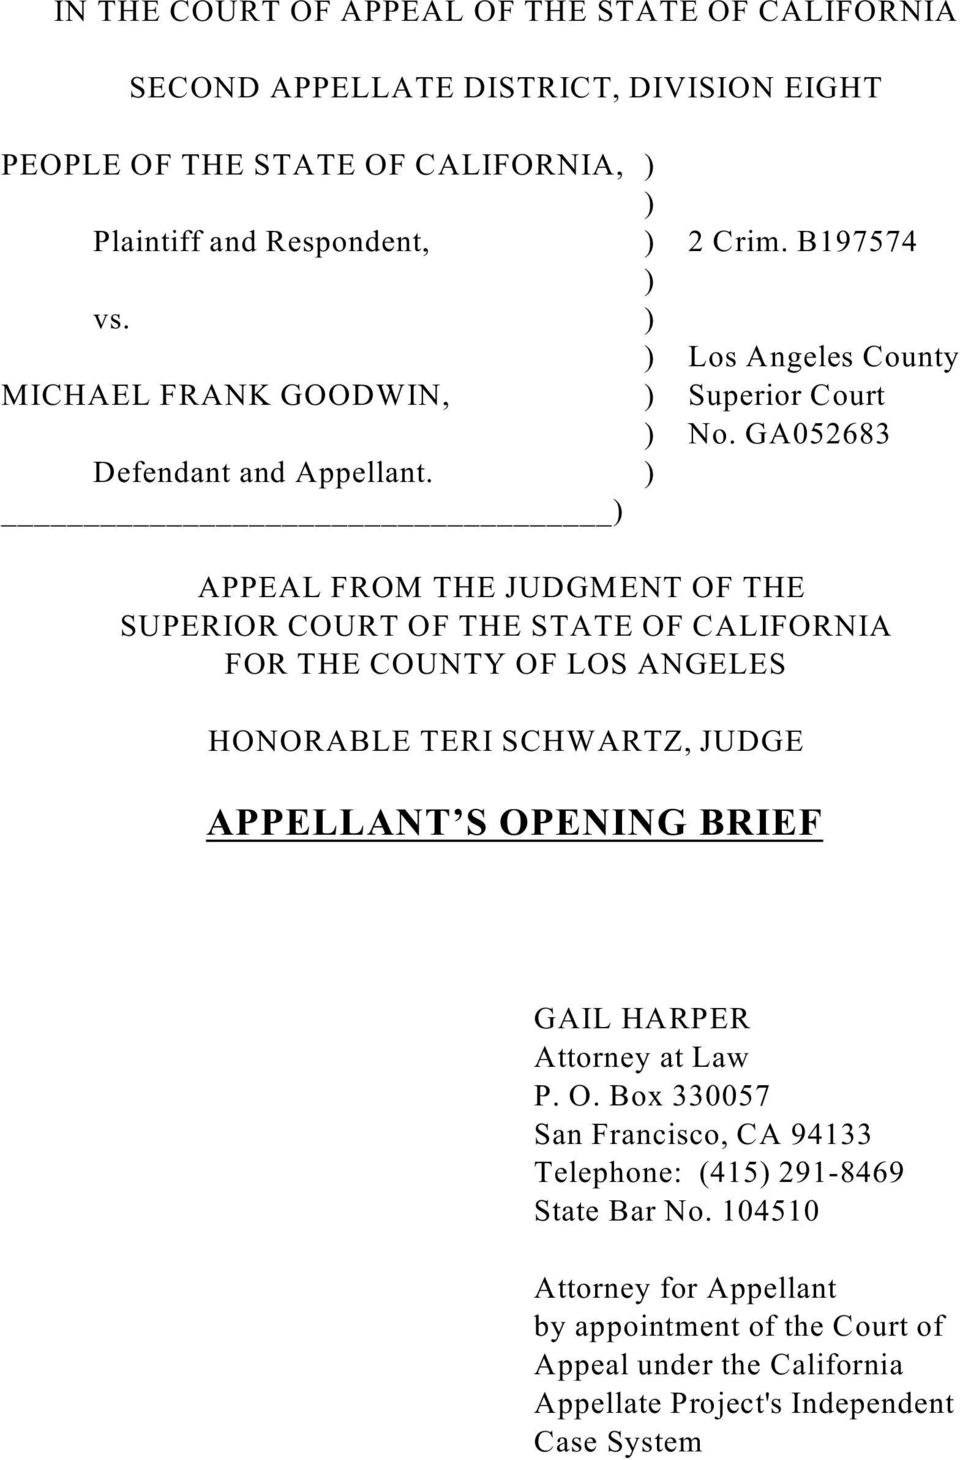 ) ) APPEAL FROM THE JUDGMENT OF THE SUPERIOR COURT OF THE STATE OF CALIFORNIA FOR THE COUNTY OF LOS ANGELES HONORABLE TERI SCHWARTZ, JUDGE APPELLANT S OPENING BRIEF GAIL